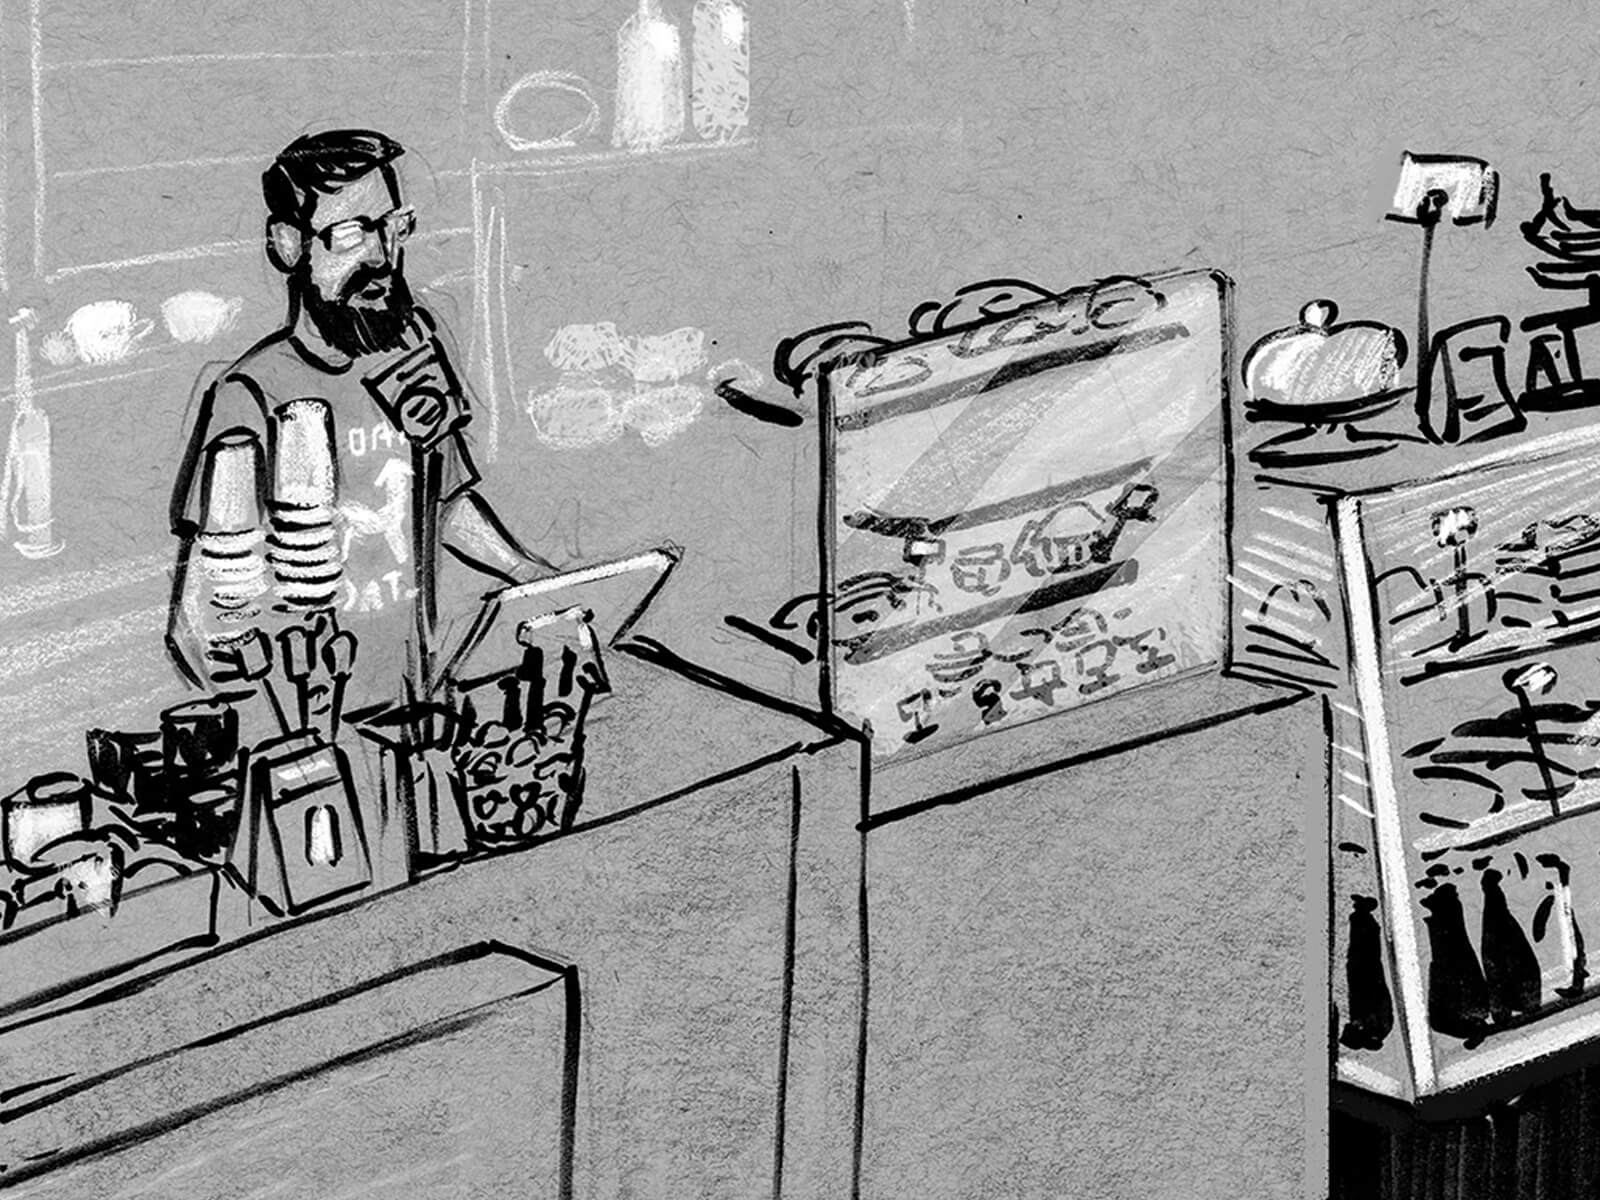 black and white drawings of a coffee shop, featuring baristas making coffee and operating the cash register